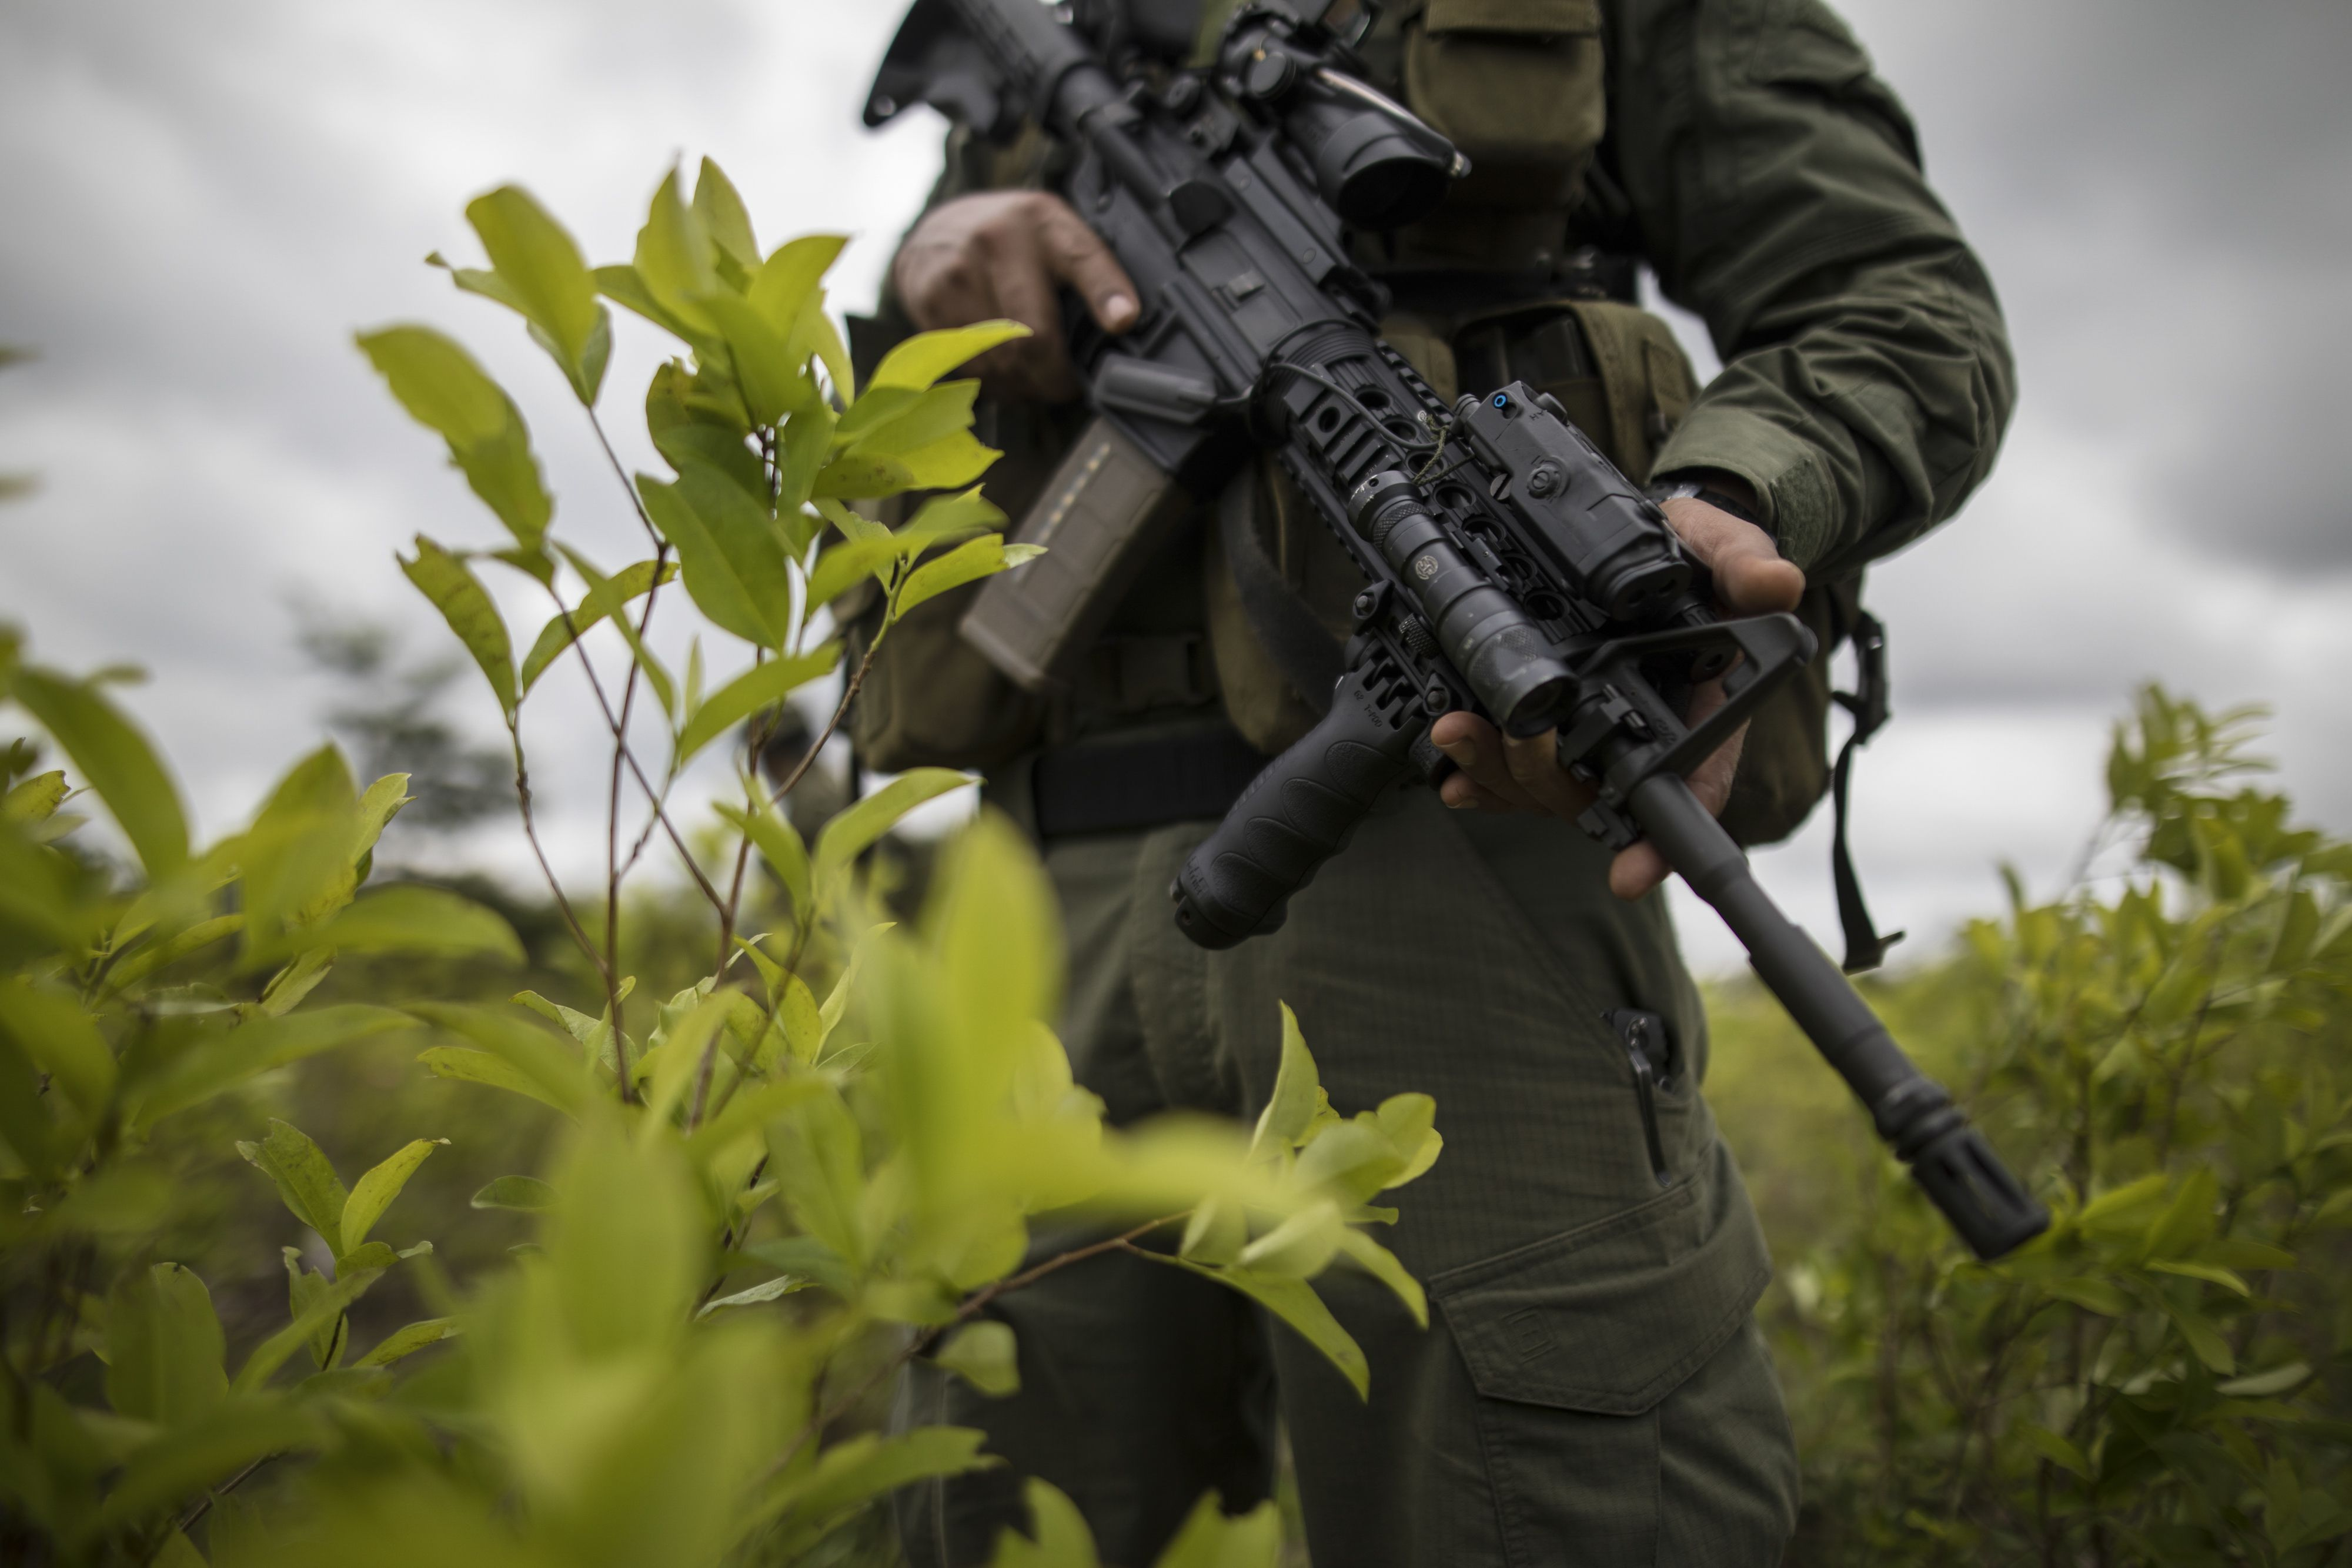 Colombian corruption case latest overseas stain for DEA